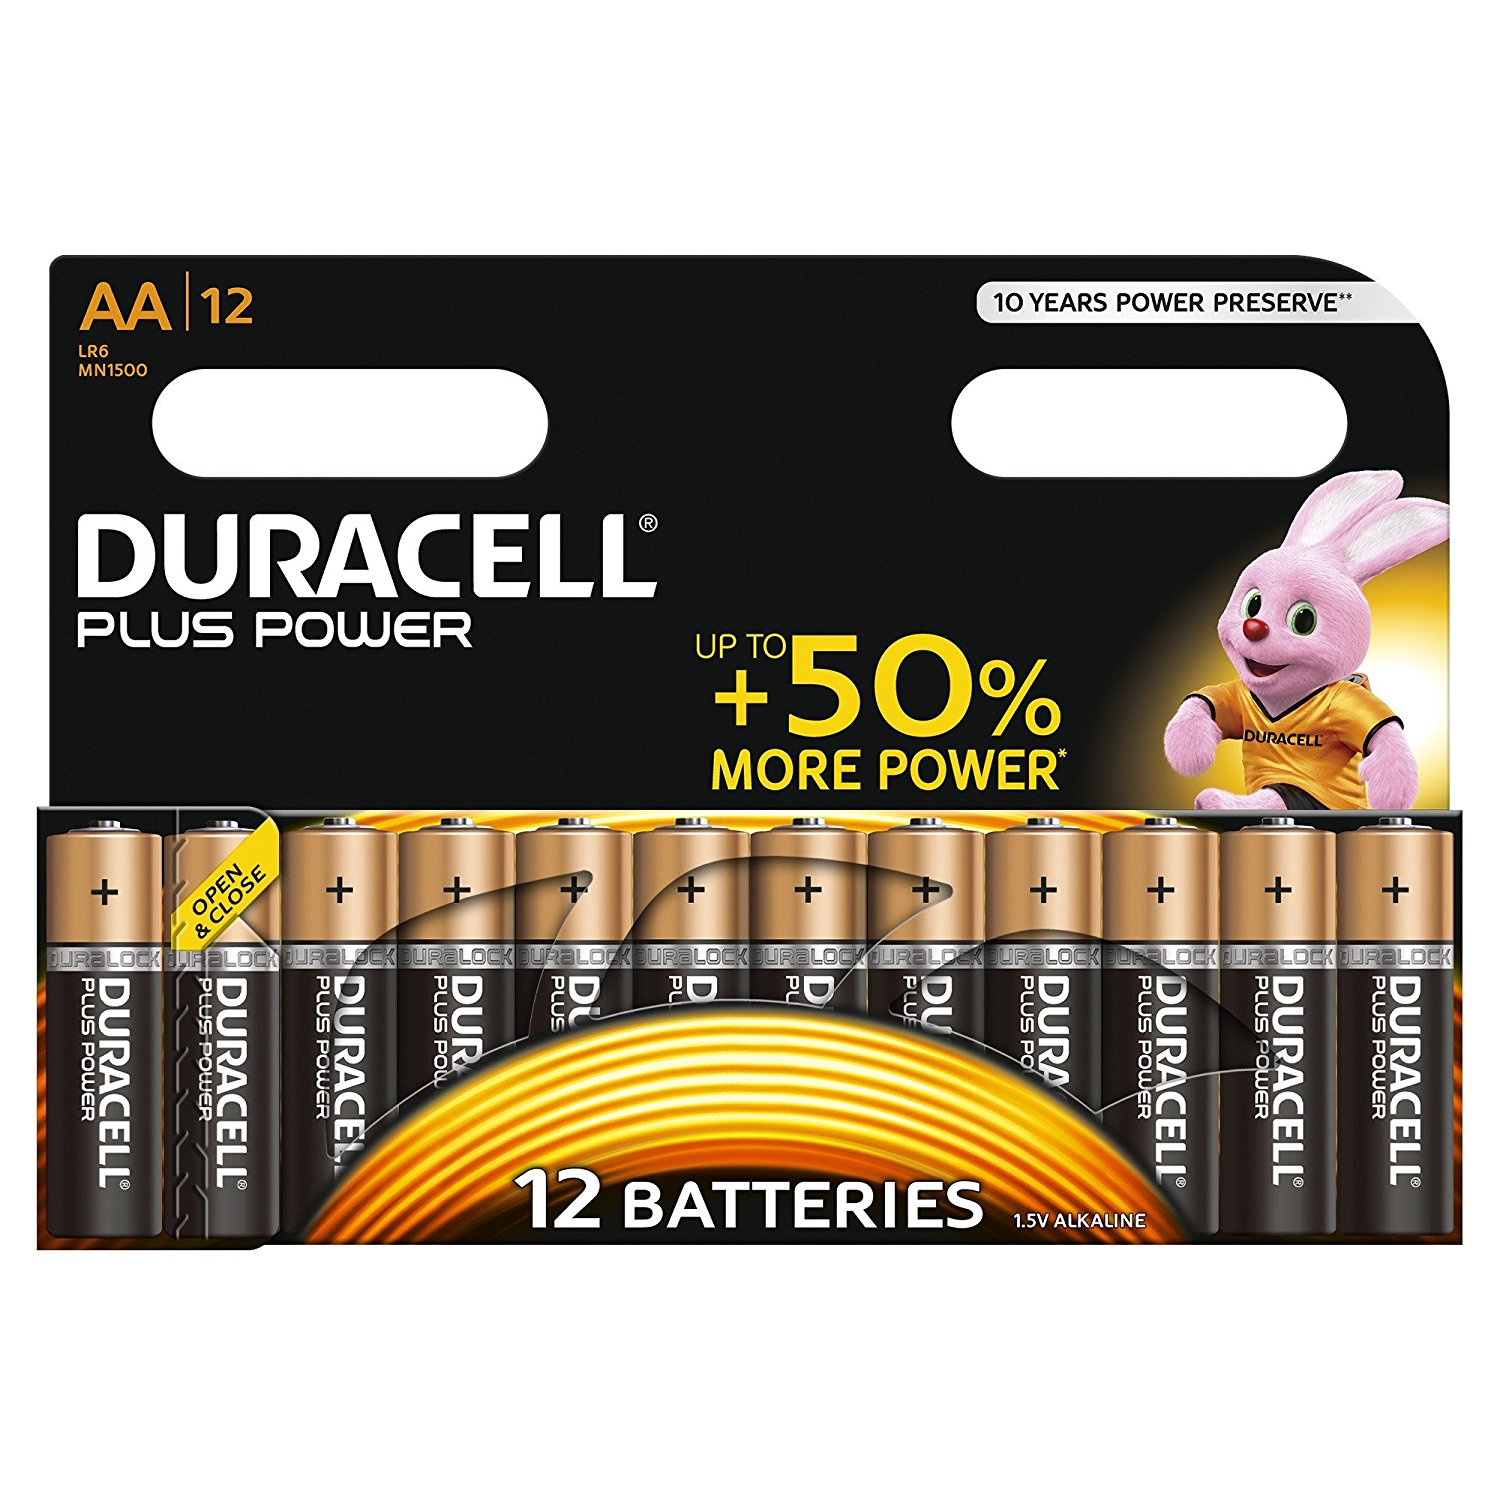 AA Duracell Batteries PK12